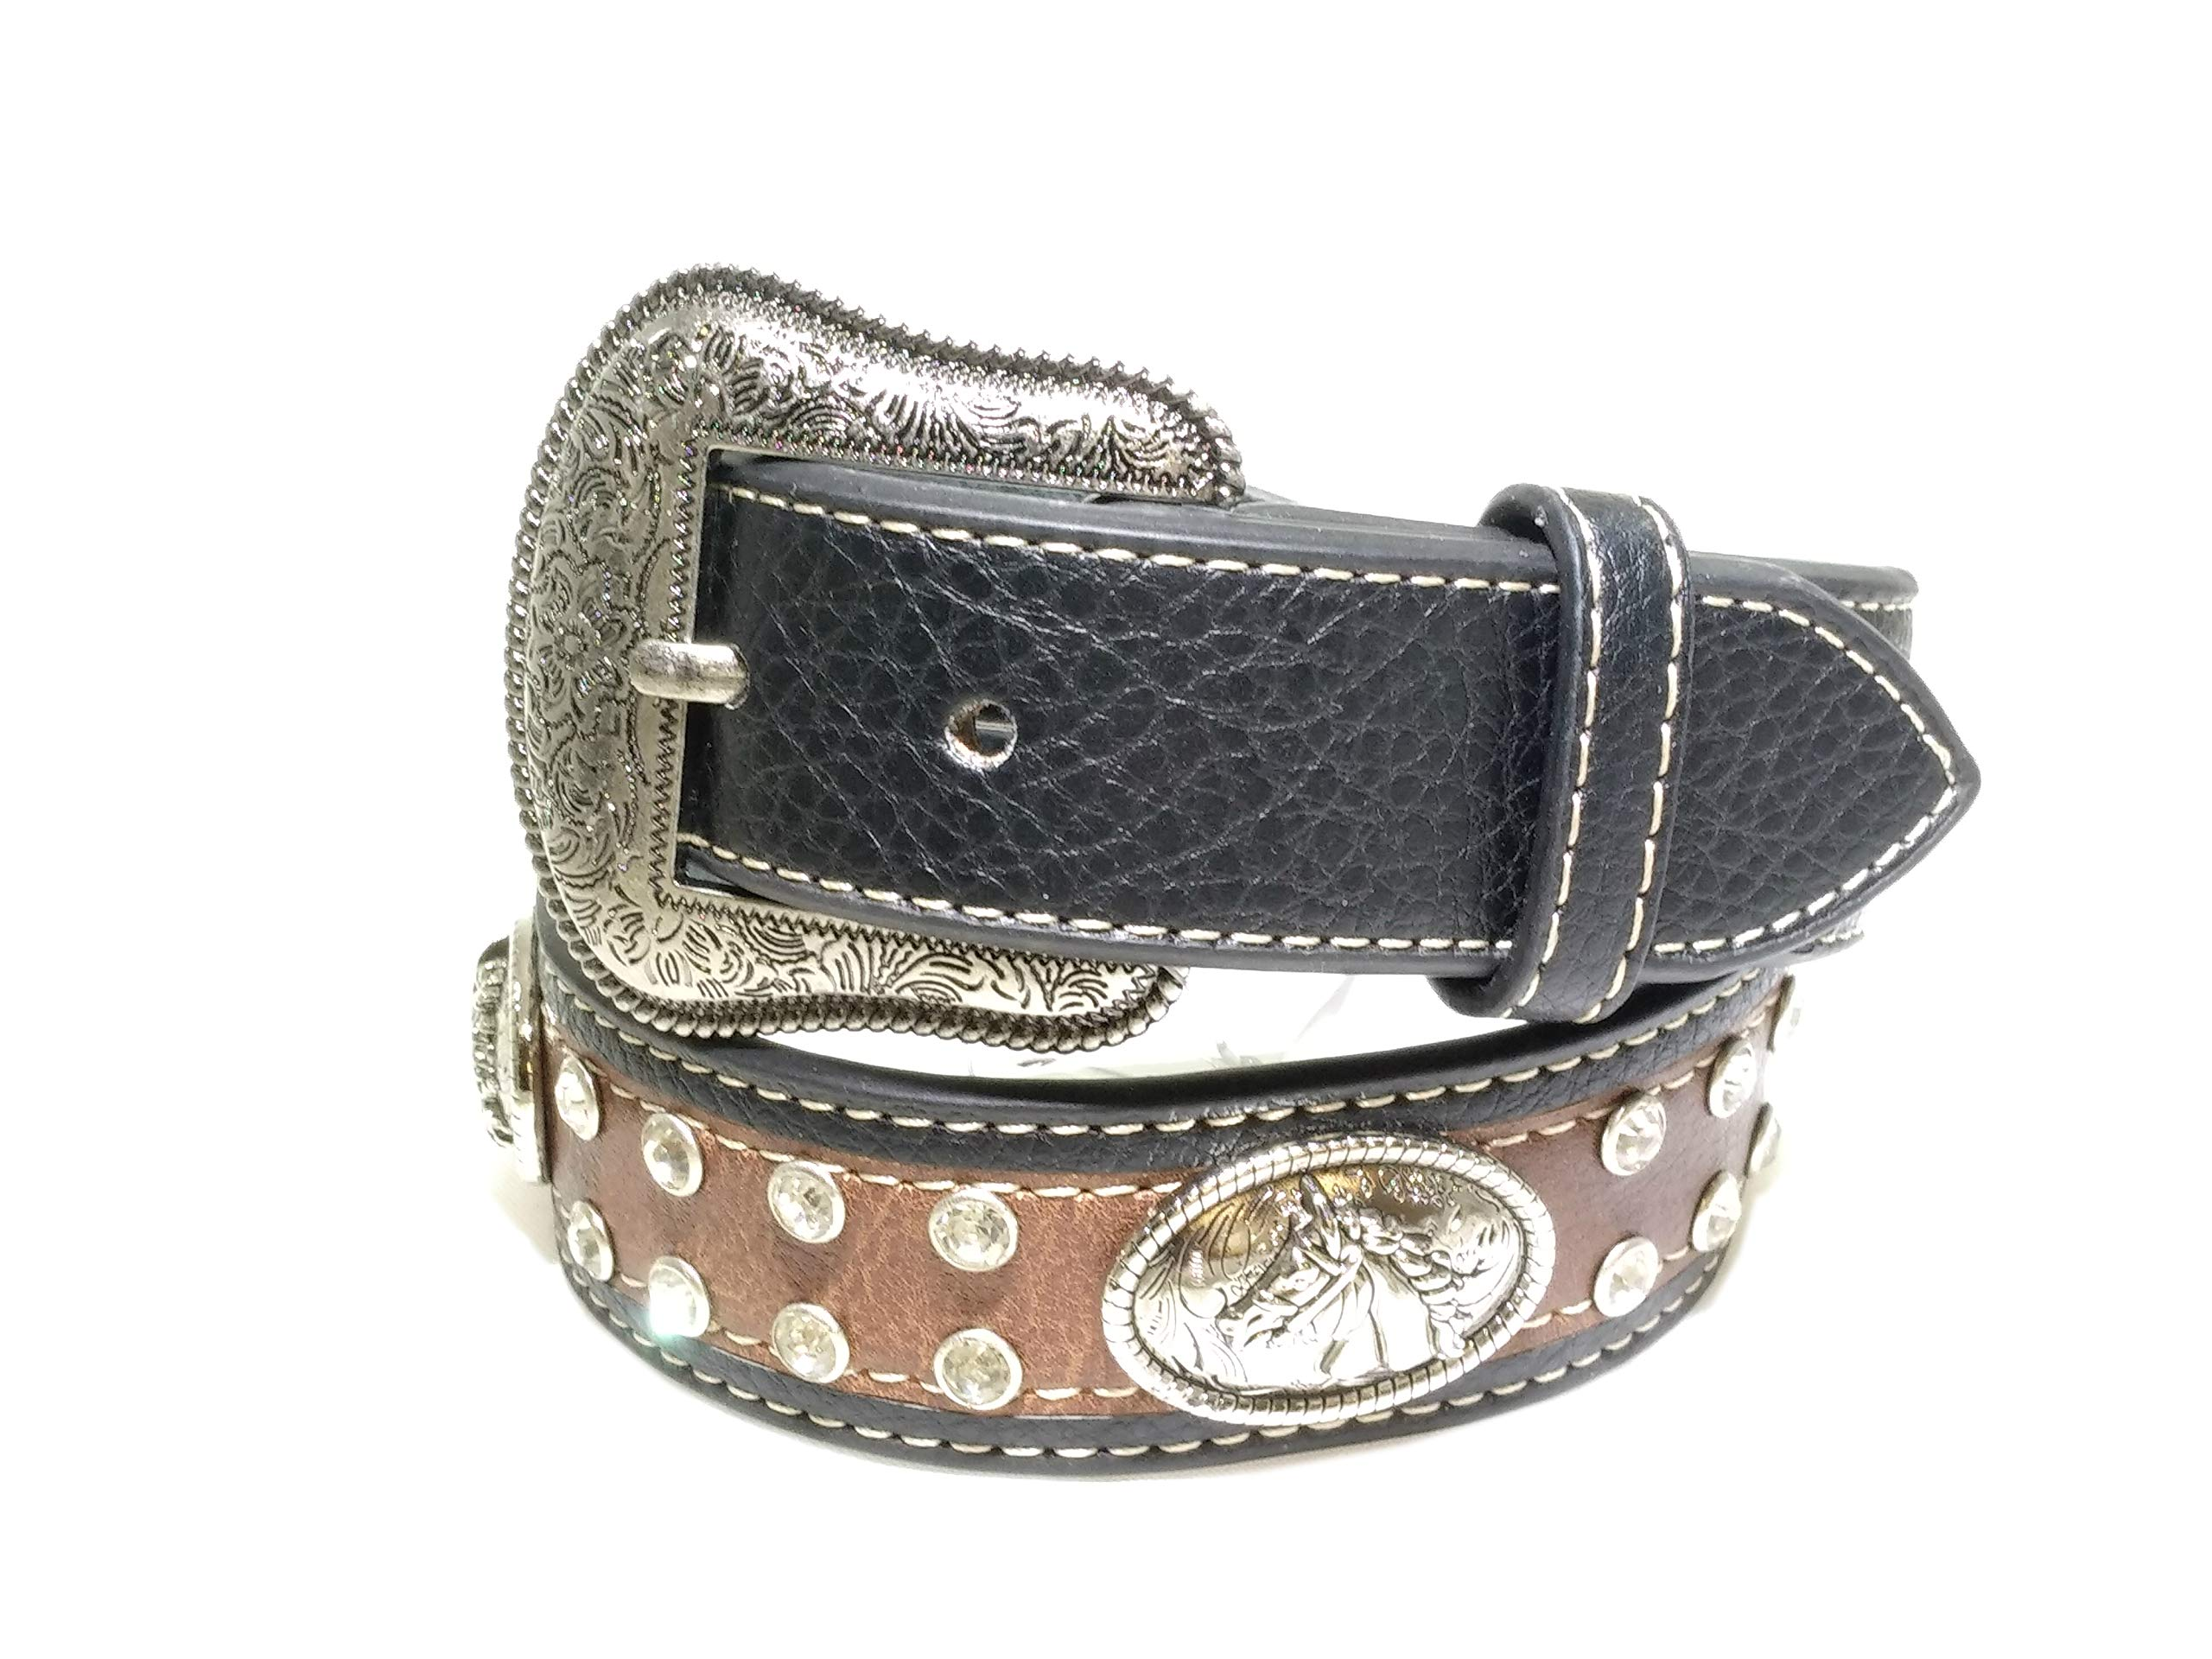 Kids Western Belts with Rhinestone Tooled Leather (Brown-Black, Medium) by West Star (Image #1)